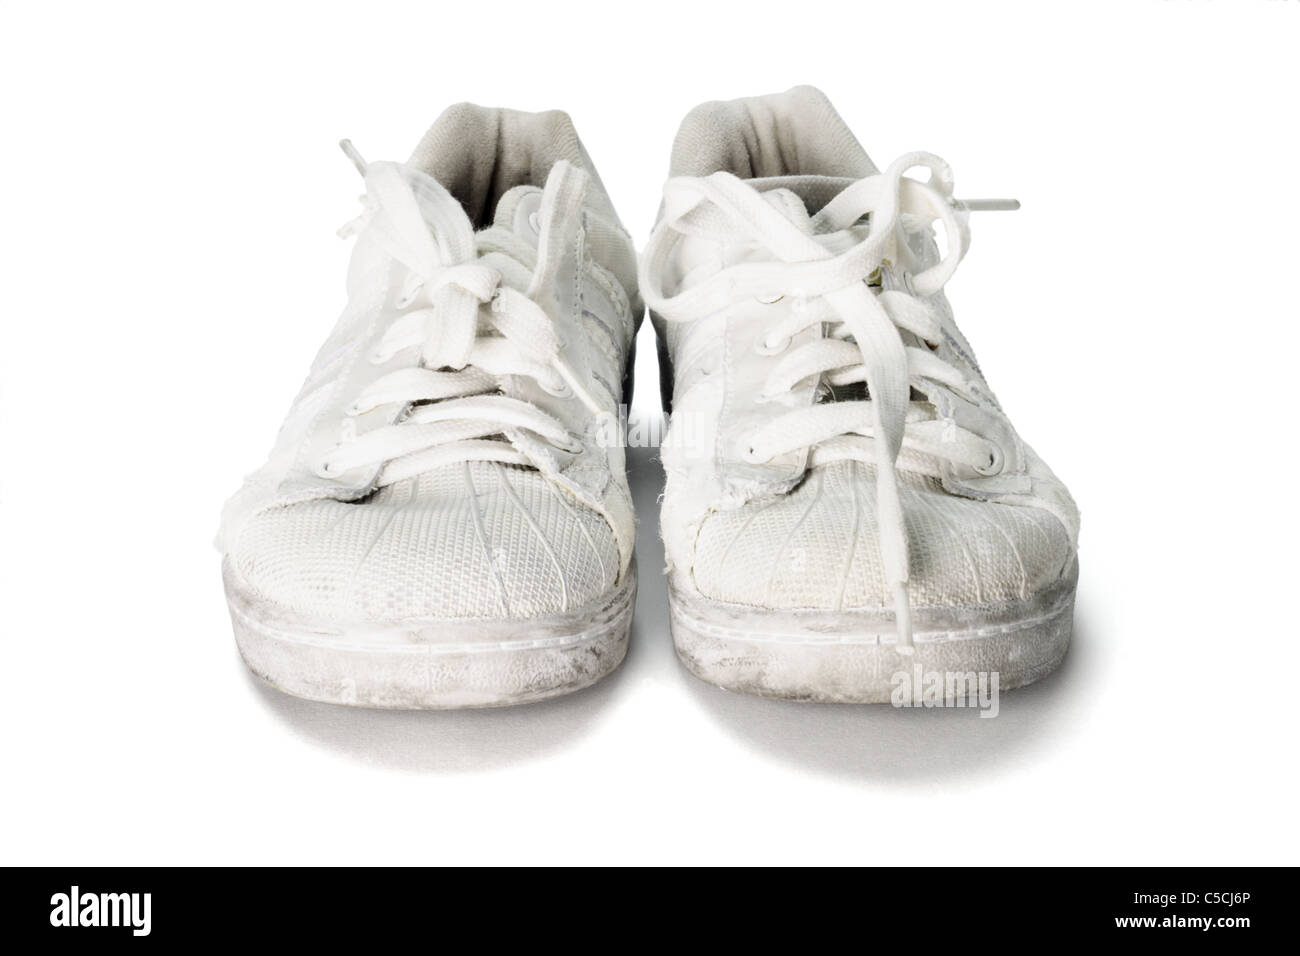 old worn out school canvas shoes on white background - Stock Image